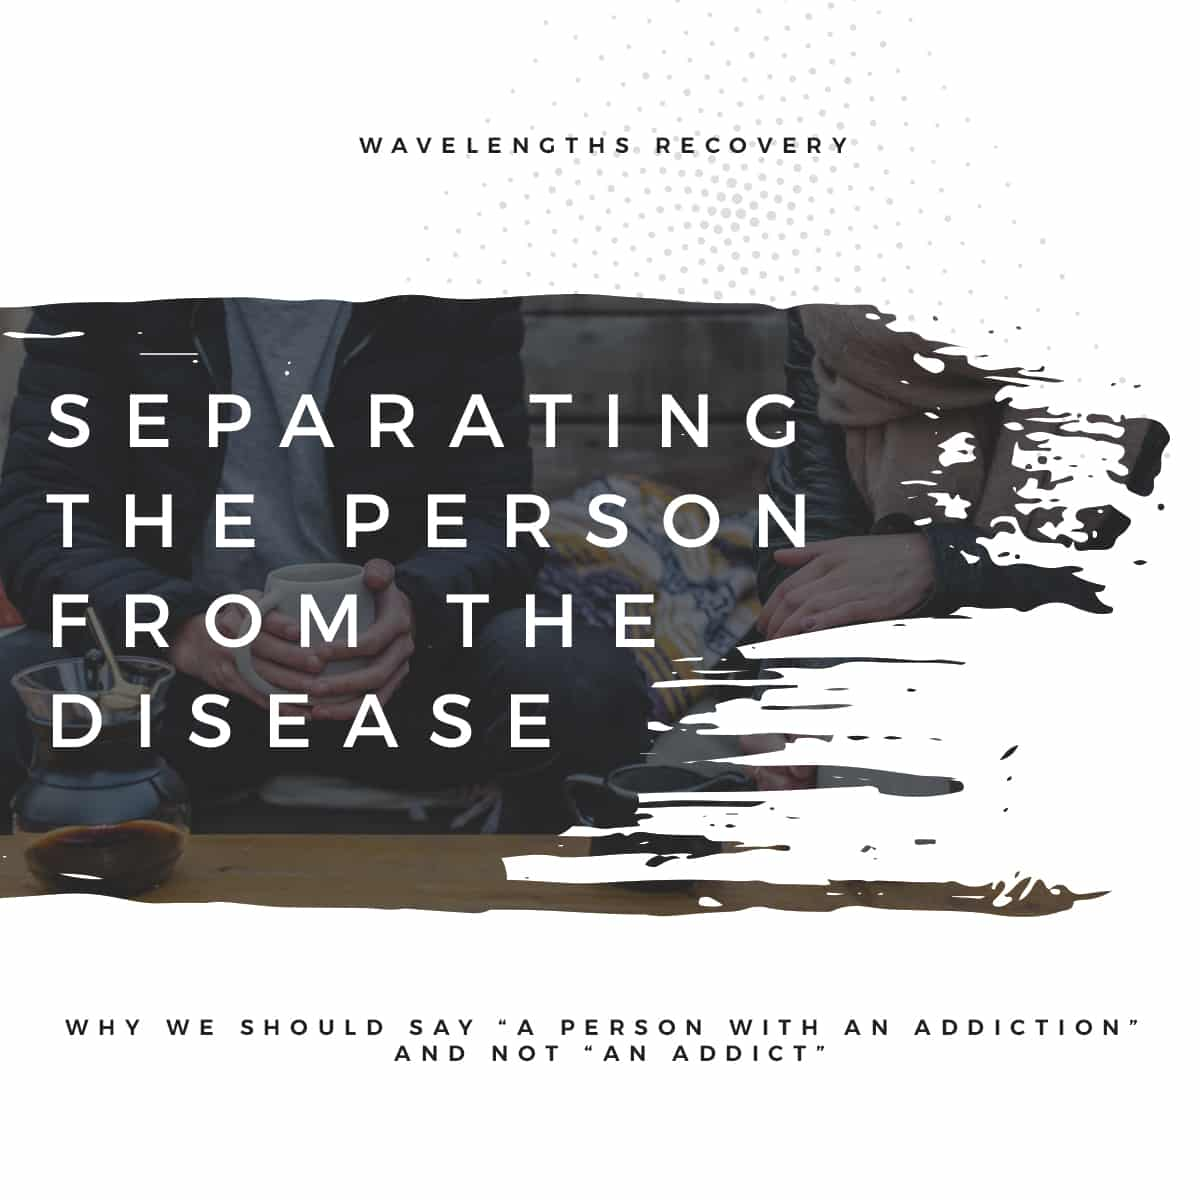 Separating the person from the disease